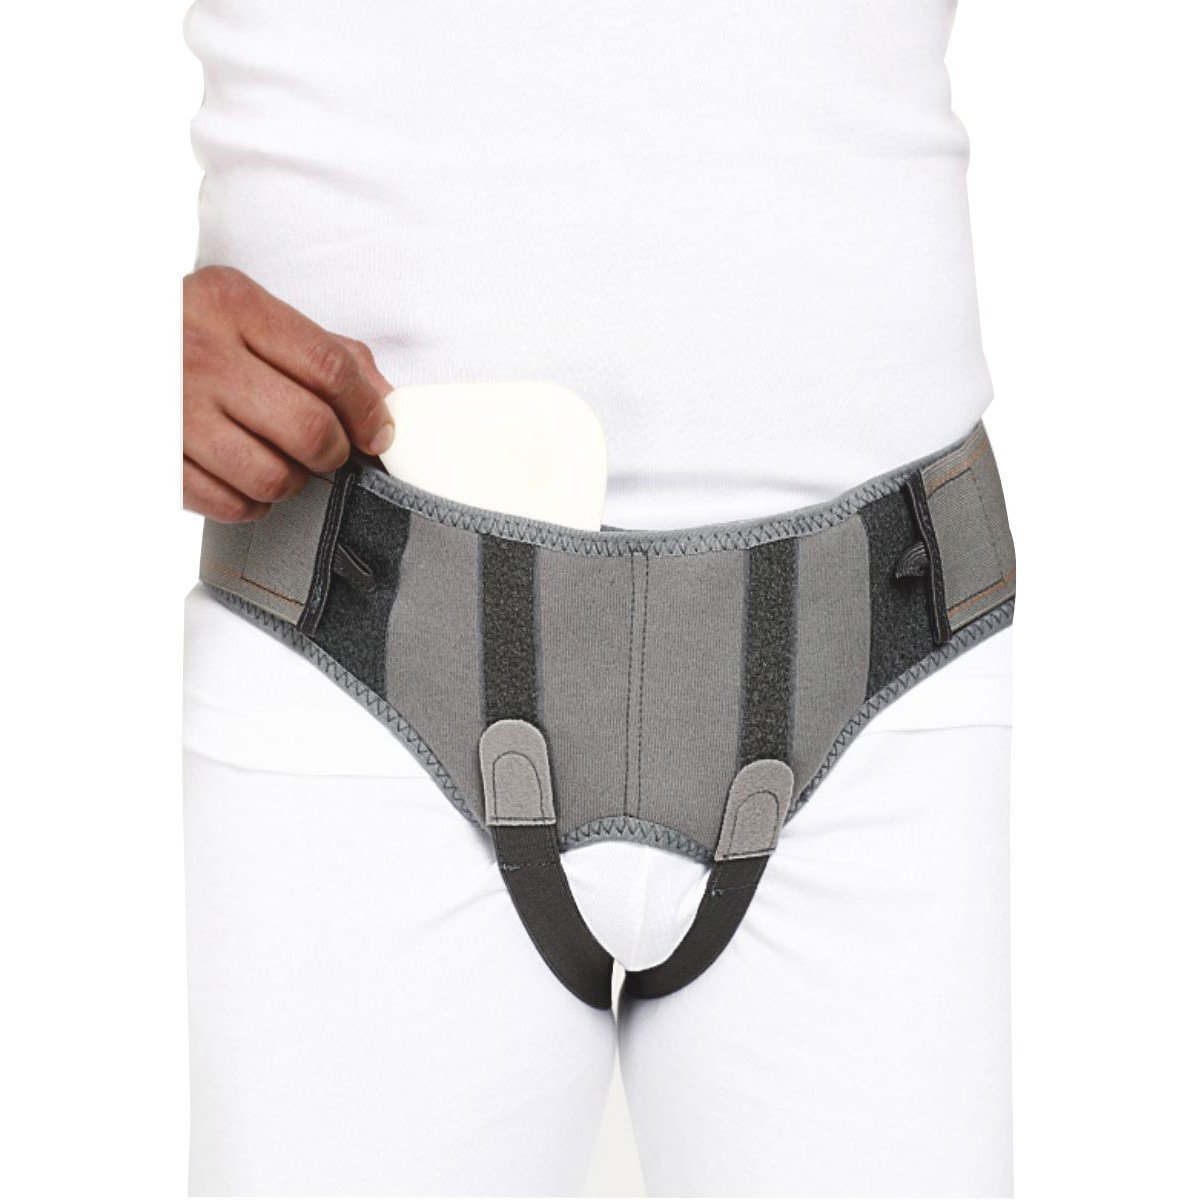 Hernia Belt Support Truss with Special Foam Pads - Superior comfort and Adjustable Pressure - Medium by SoulGenie